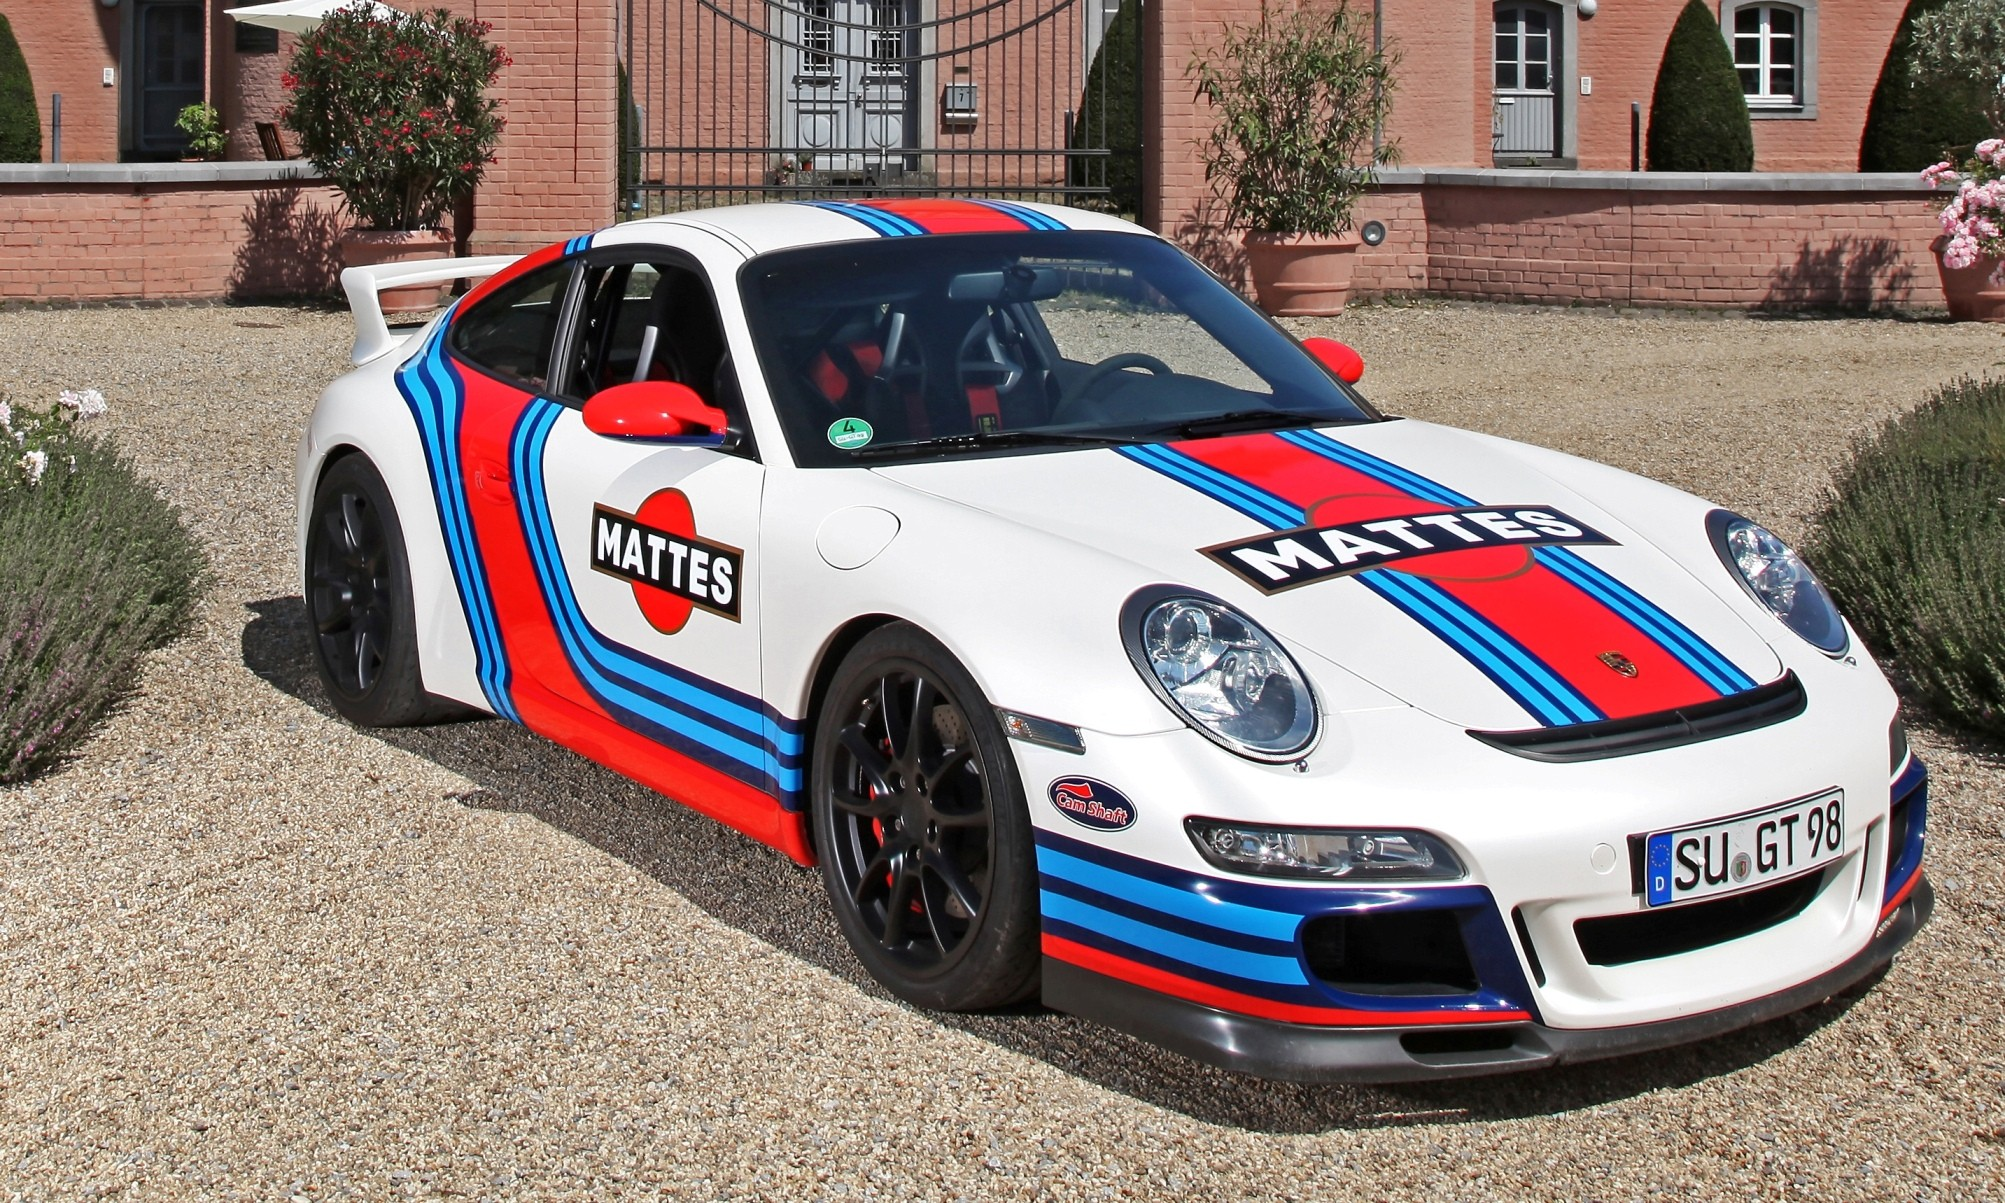 germany is mad for car wraps martini style racing livery by cam shaft for th. Black Bedroom Furniture Sets. Home Design Ideas